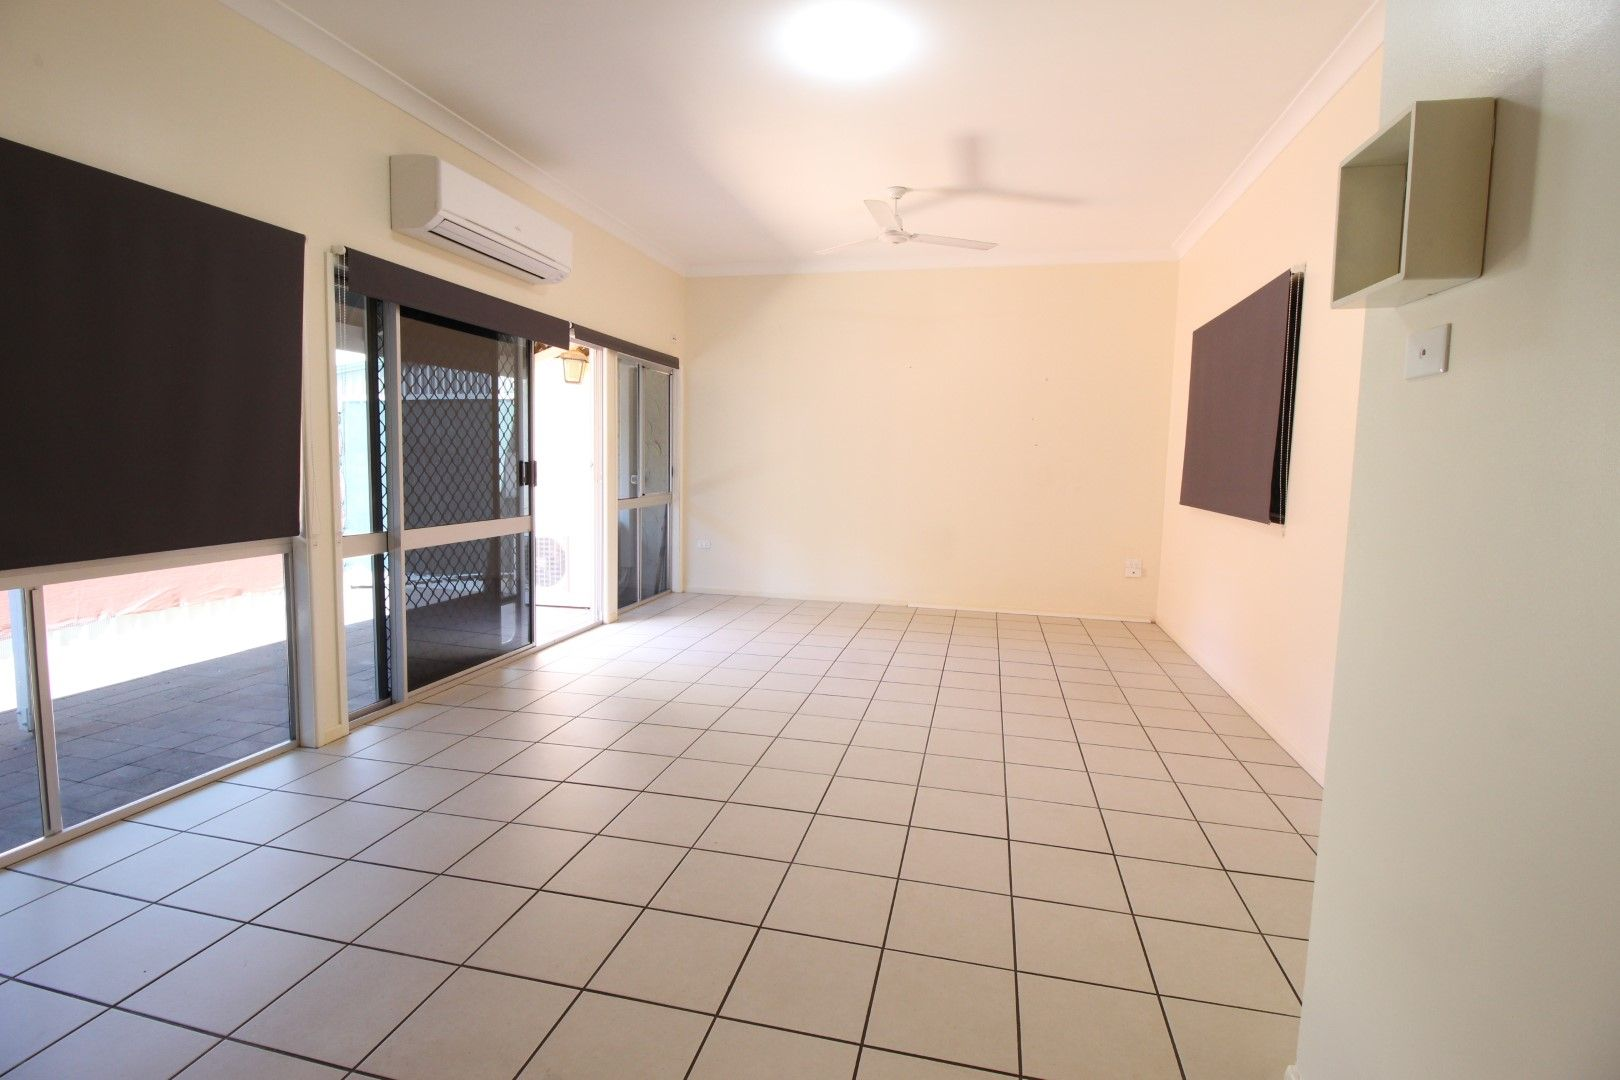 5/37 Hackett Terrace, Richmond Hill QLD 4820, Image 1